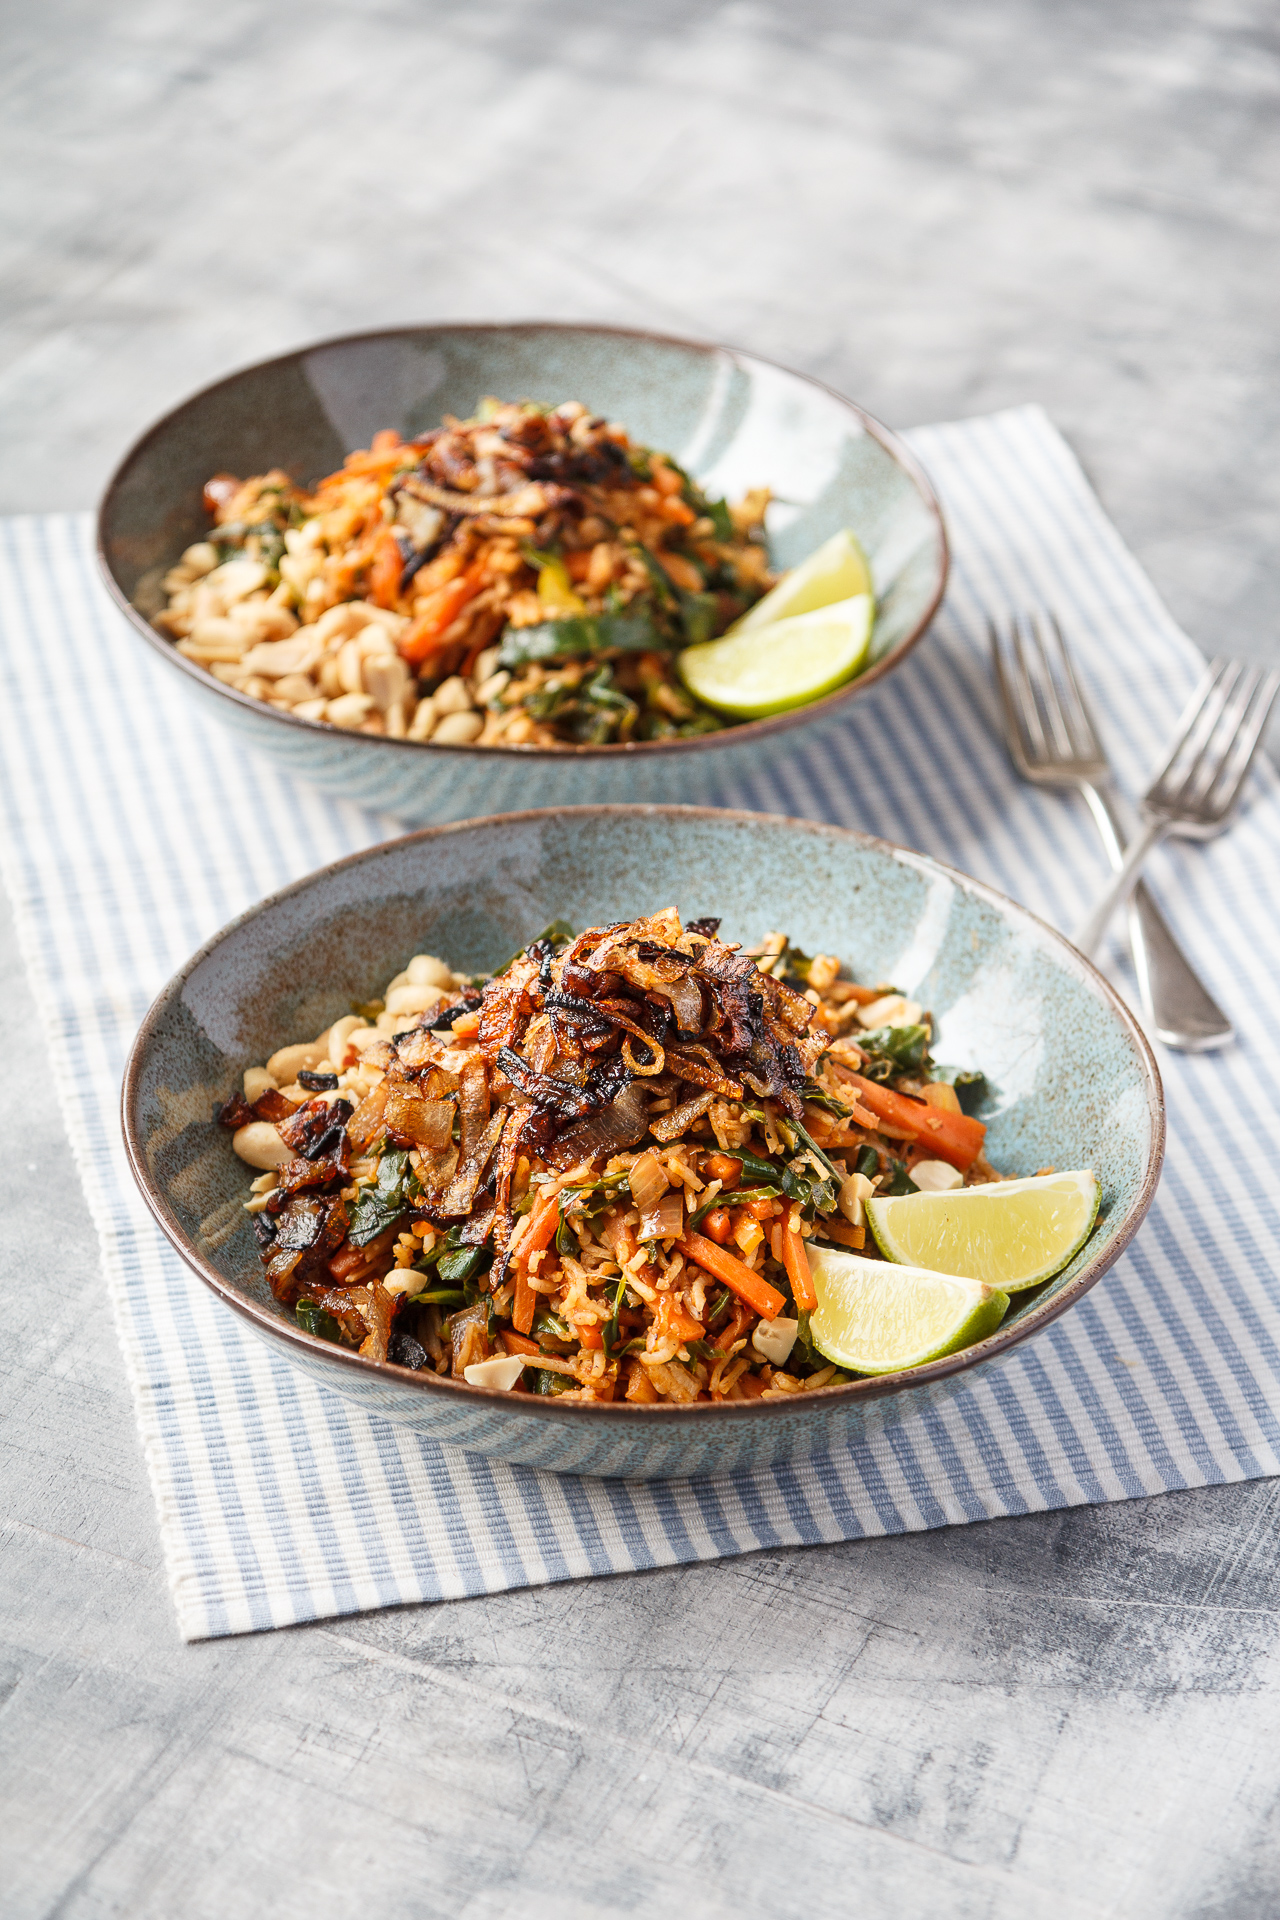 Vegan shallot and vegetable nasi goreng - Fried rice is the perfect speedy comfort food, great on a Friday night served with a couple of cold beers. Use your favourite chilli sauce to spice it up!